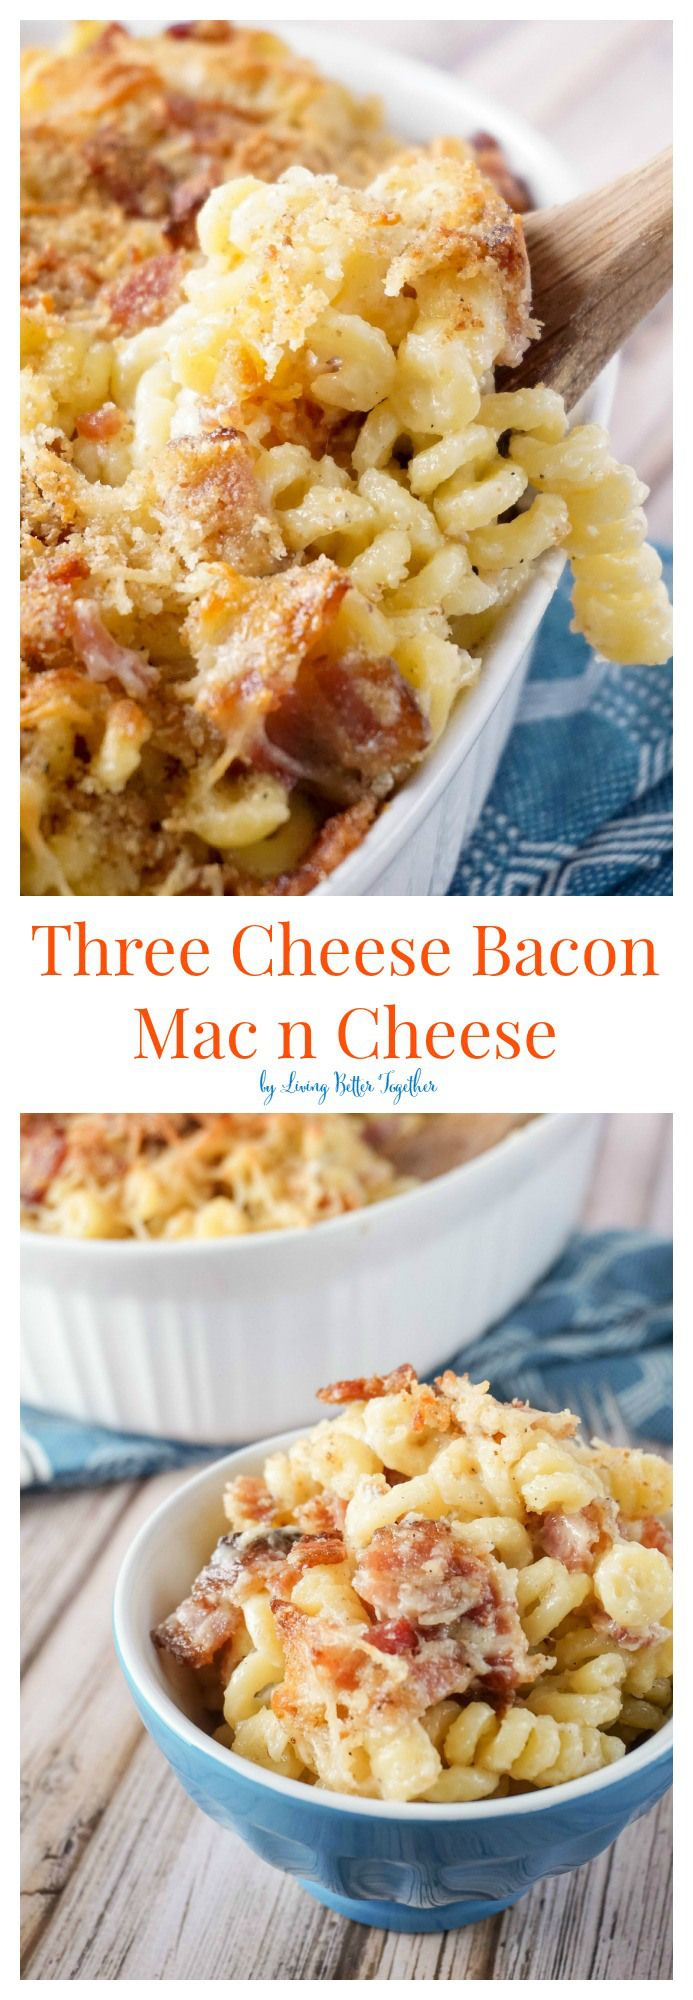 This Mac n Cheese is loaded up with crispy baked bacon and three different kinds of cheese, it's to die for! (Baking Goods Bacon)